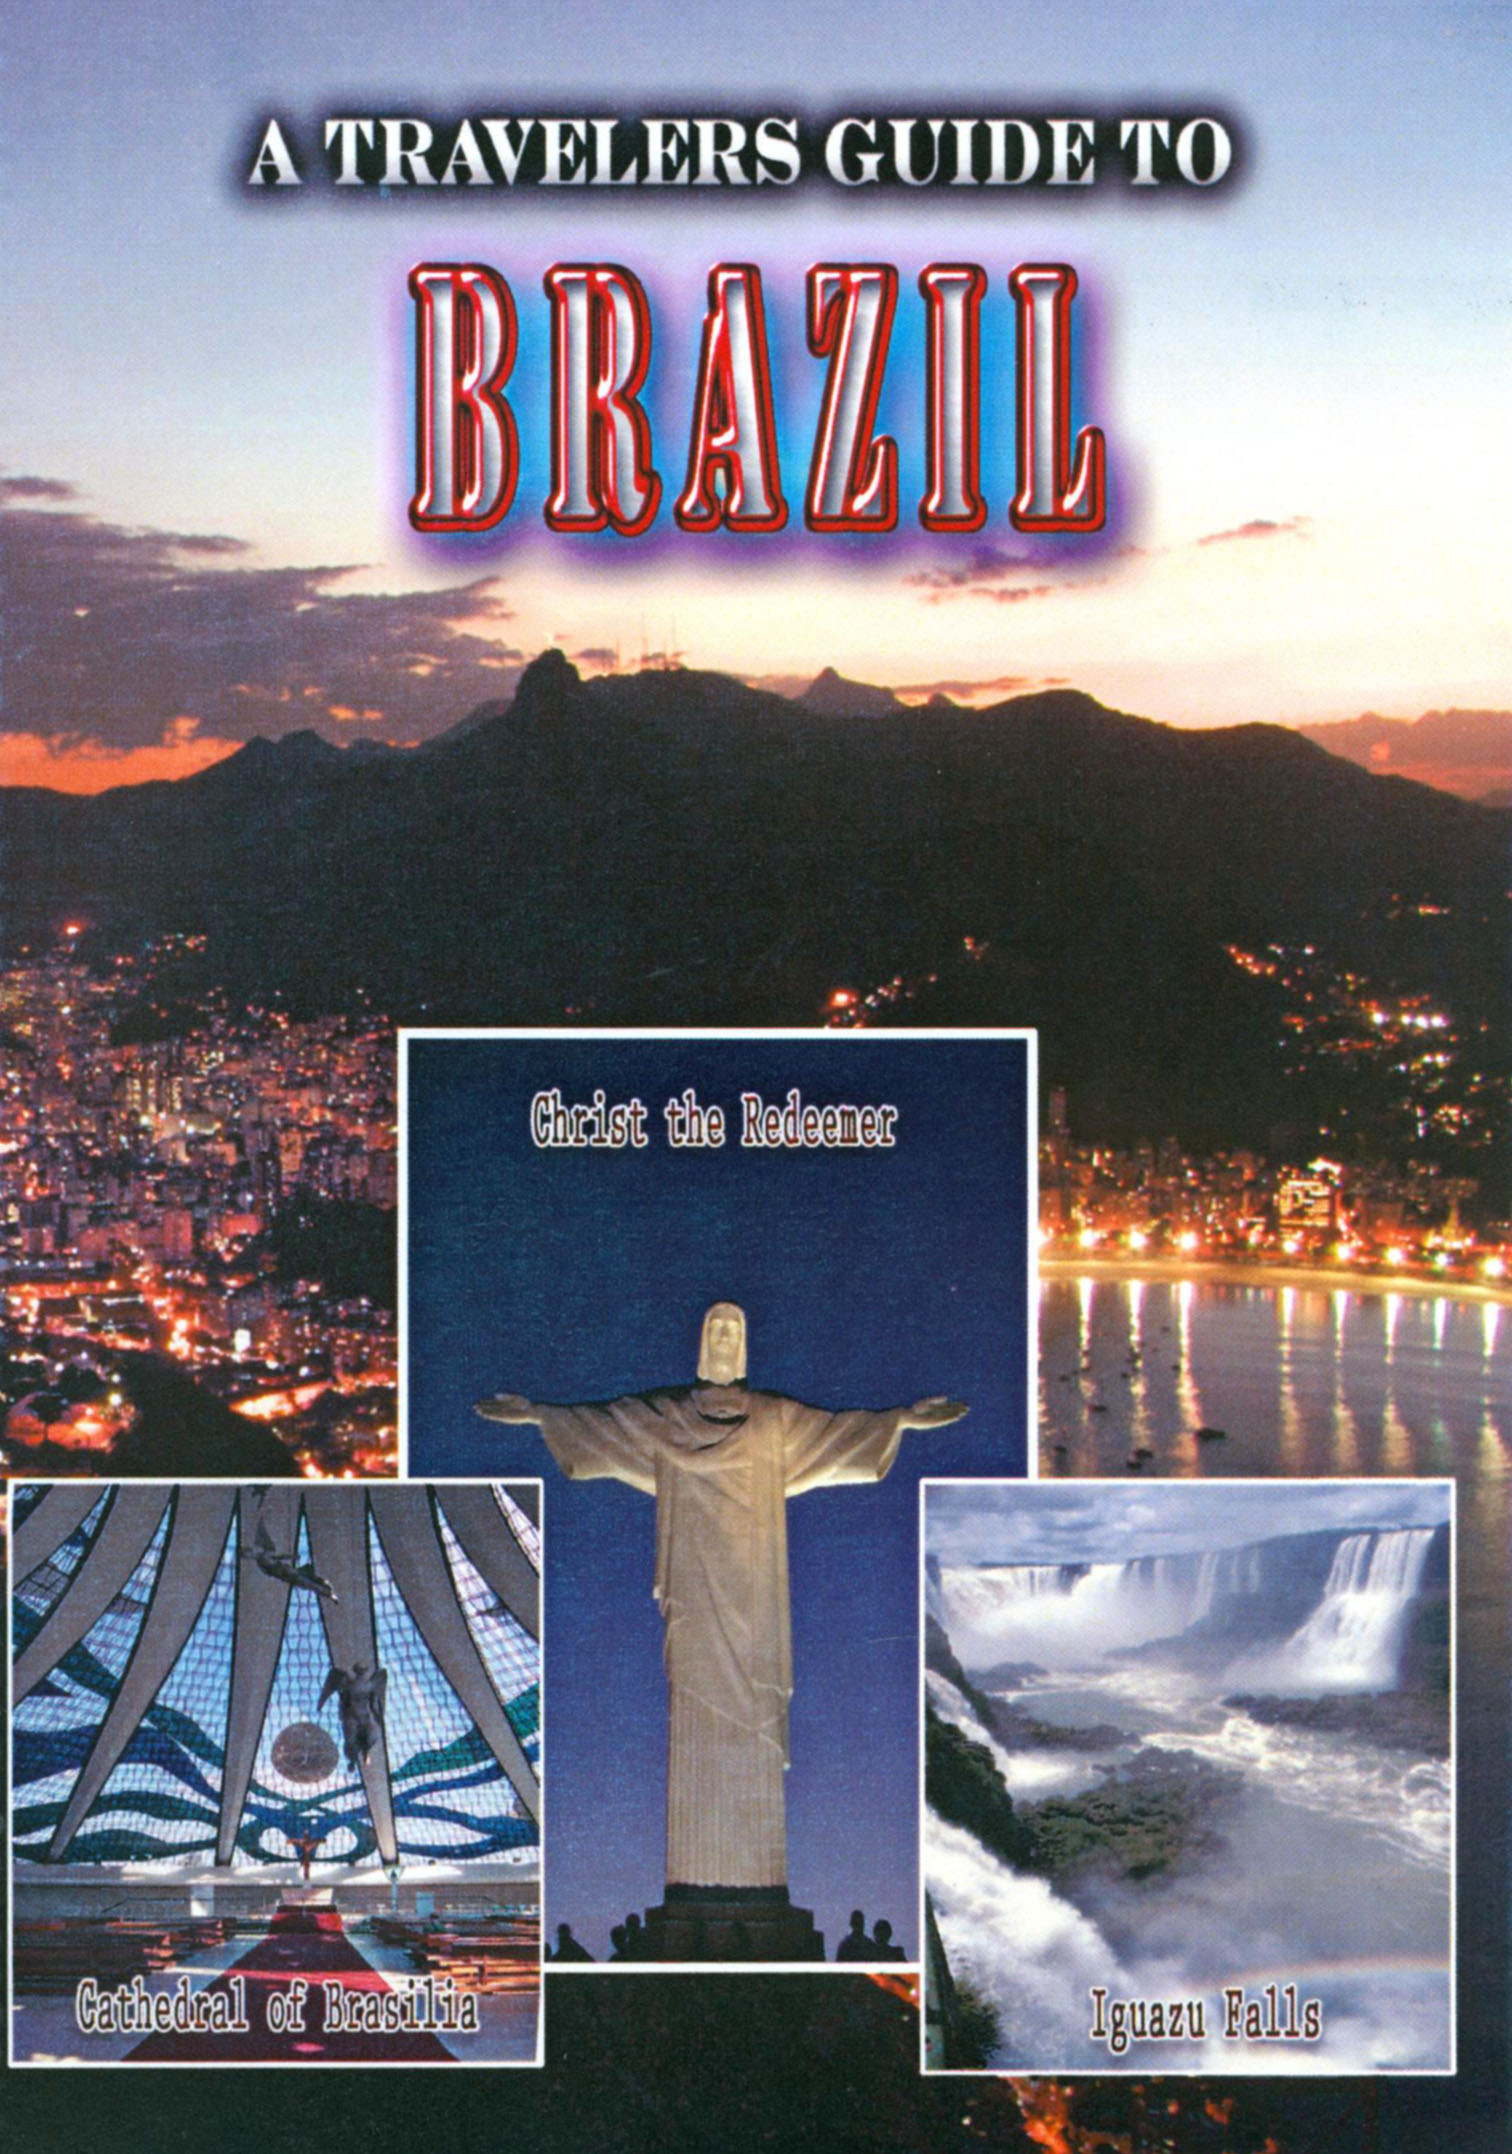 A Travelers Guide to Brazil